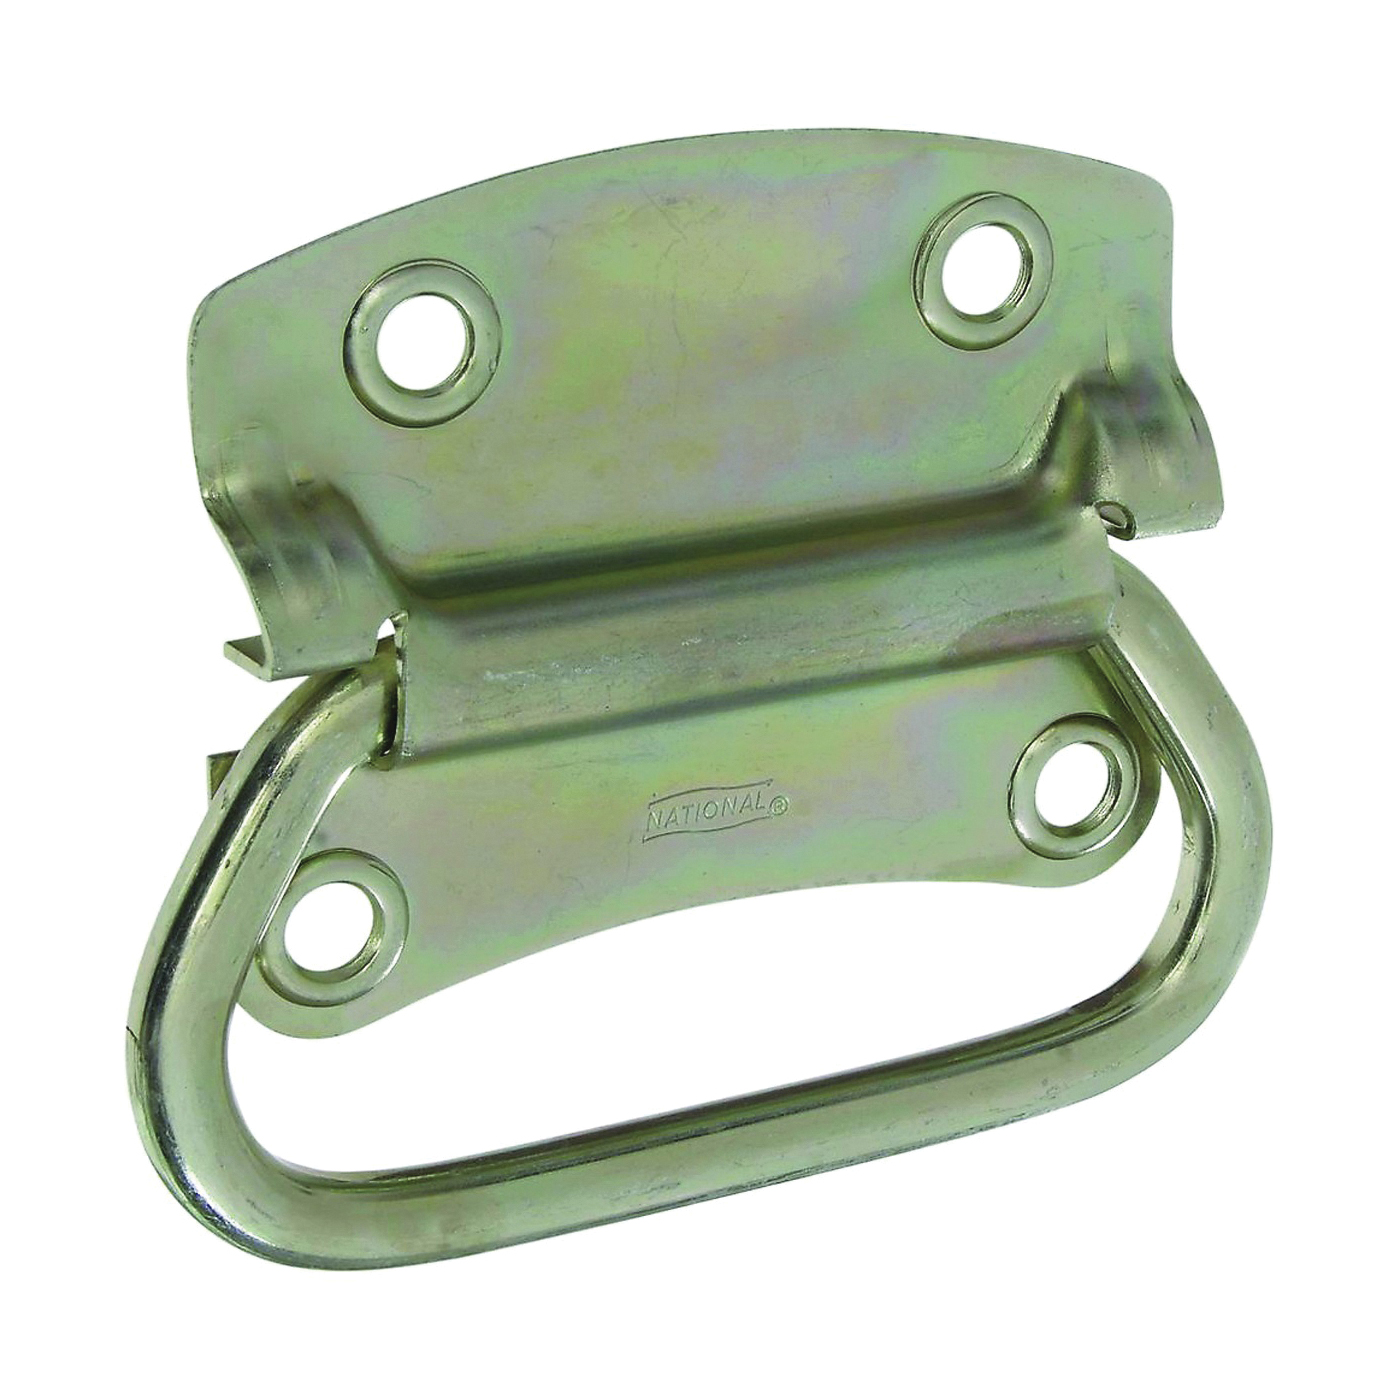 Picture of National Hardware SPB175 Series N226-886 Chest Handle, 4.23 in L, 3-1/2 in W, Steel, Zinc